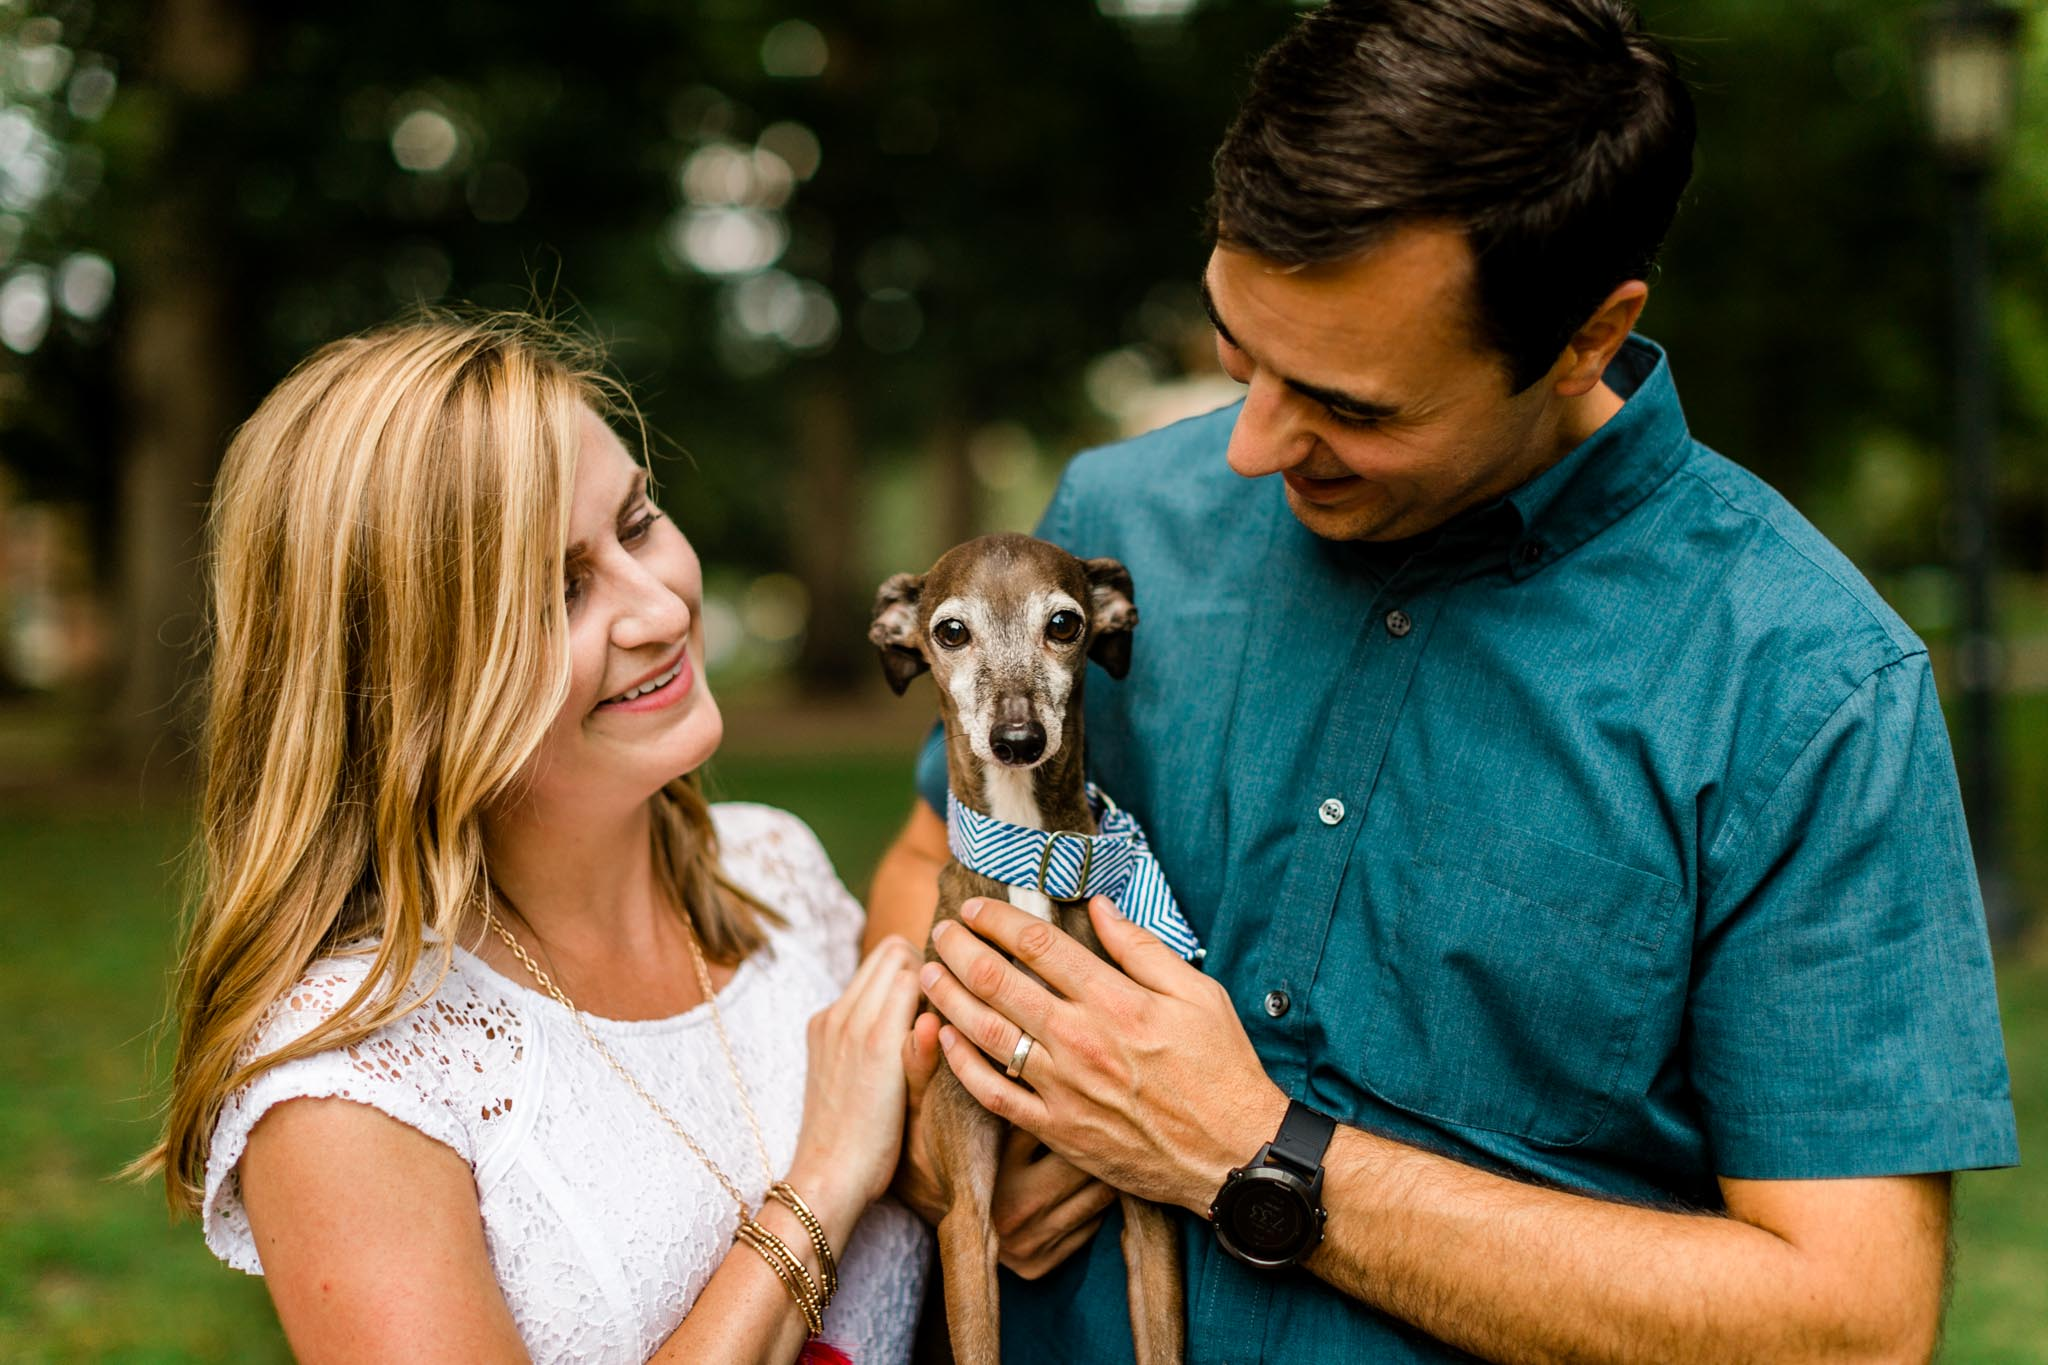 Chapel Hill Family Photographer at UNC | By G. Lin Photography | Couple holding dog